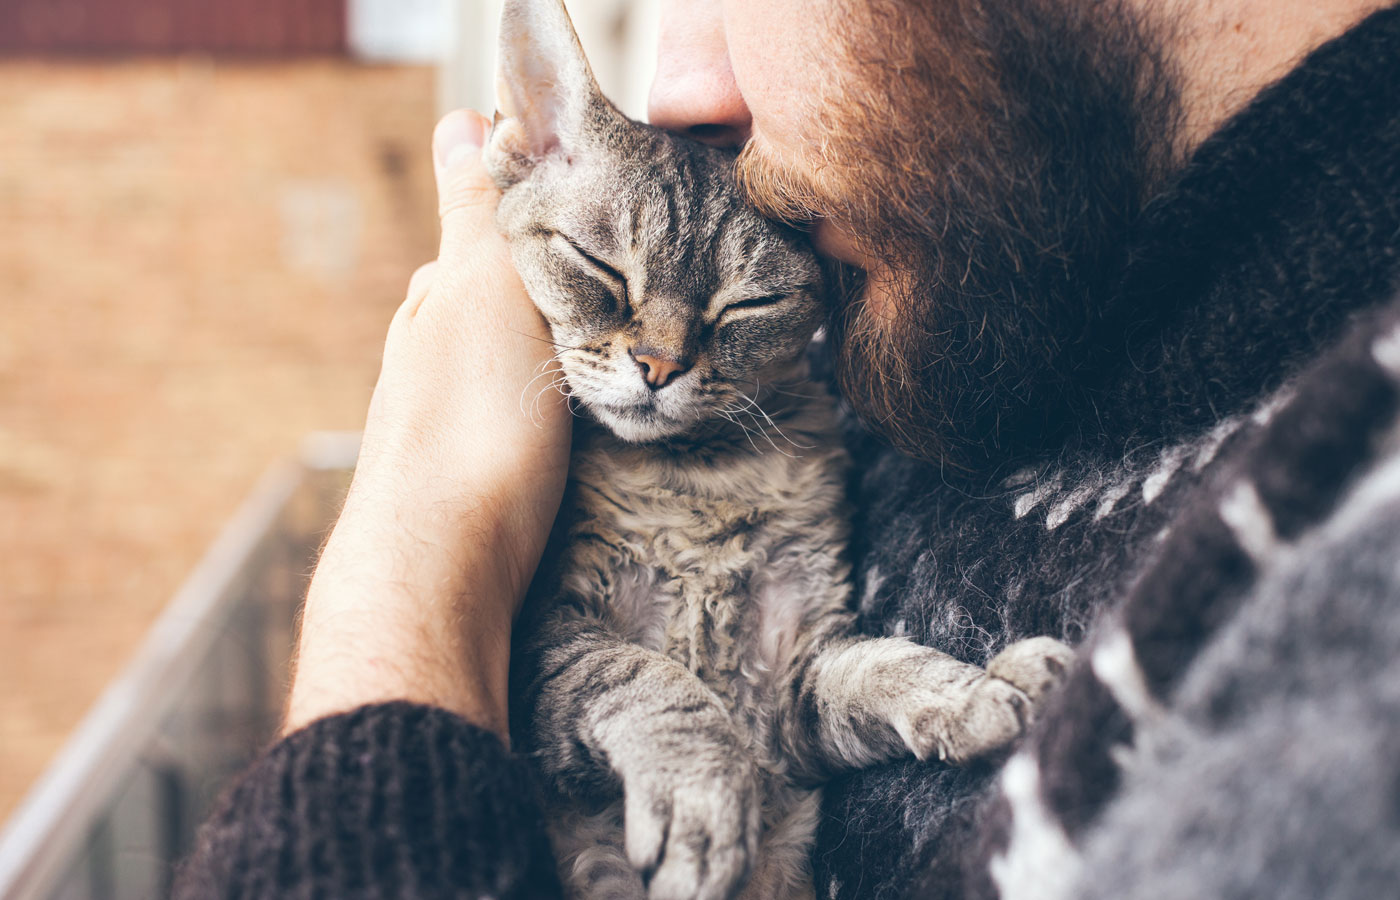 Close-up of beard man in icelandic sweater who is holding and kissing his cute purring Devon Rex cat